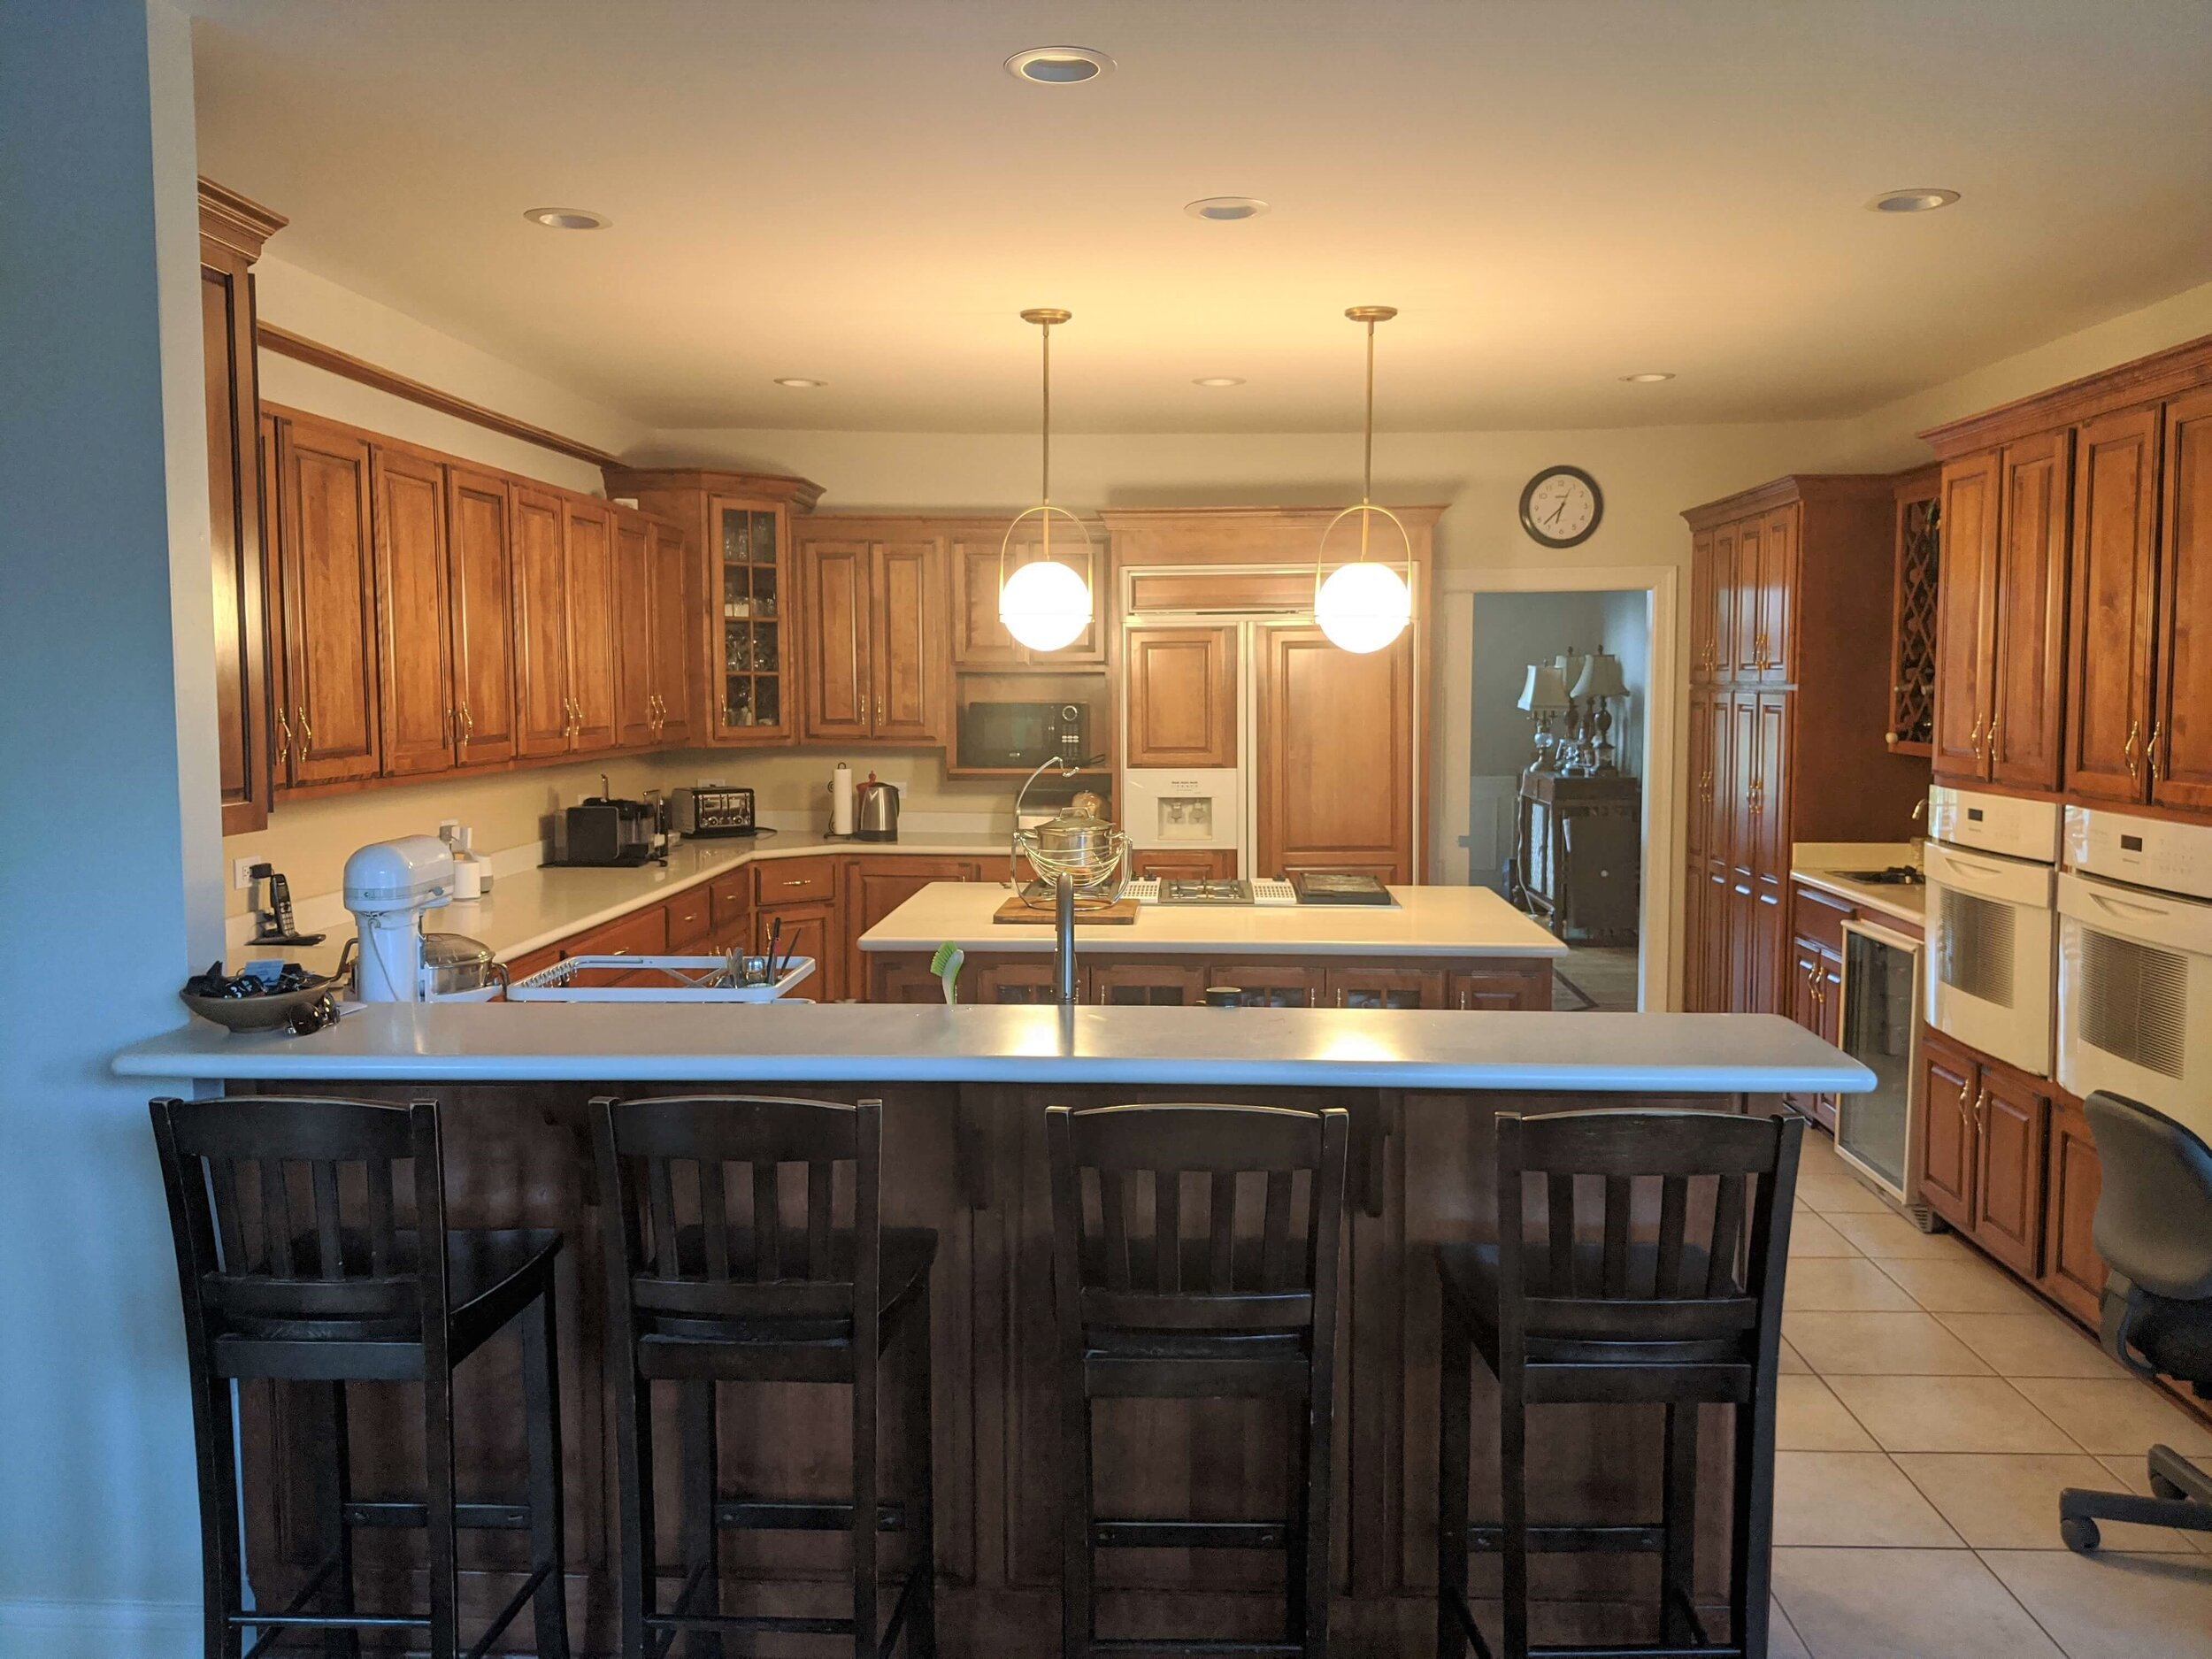 Wood Cabinets Without Painting, How Can I Update My Old Kitchen Cabinets